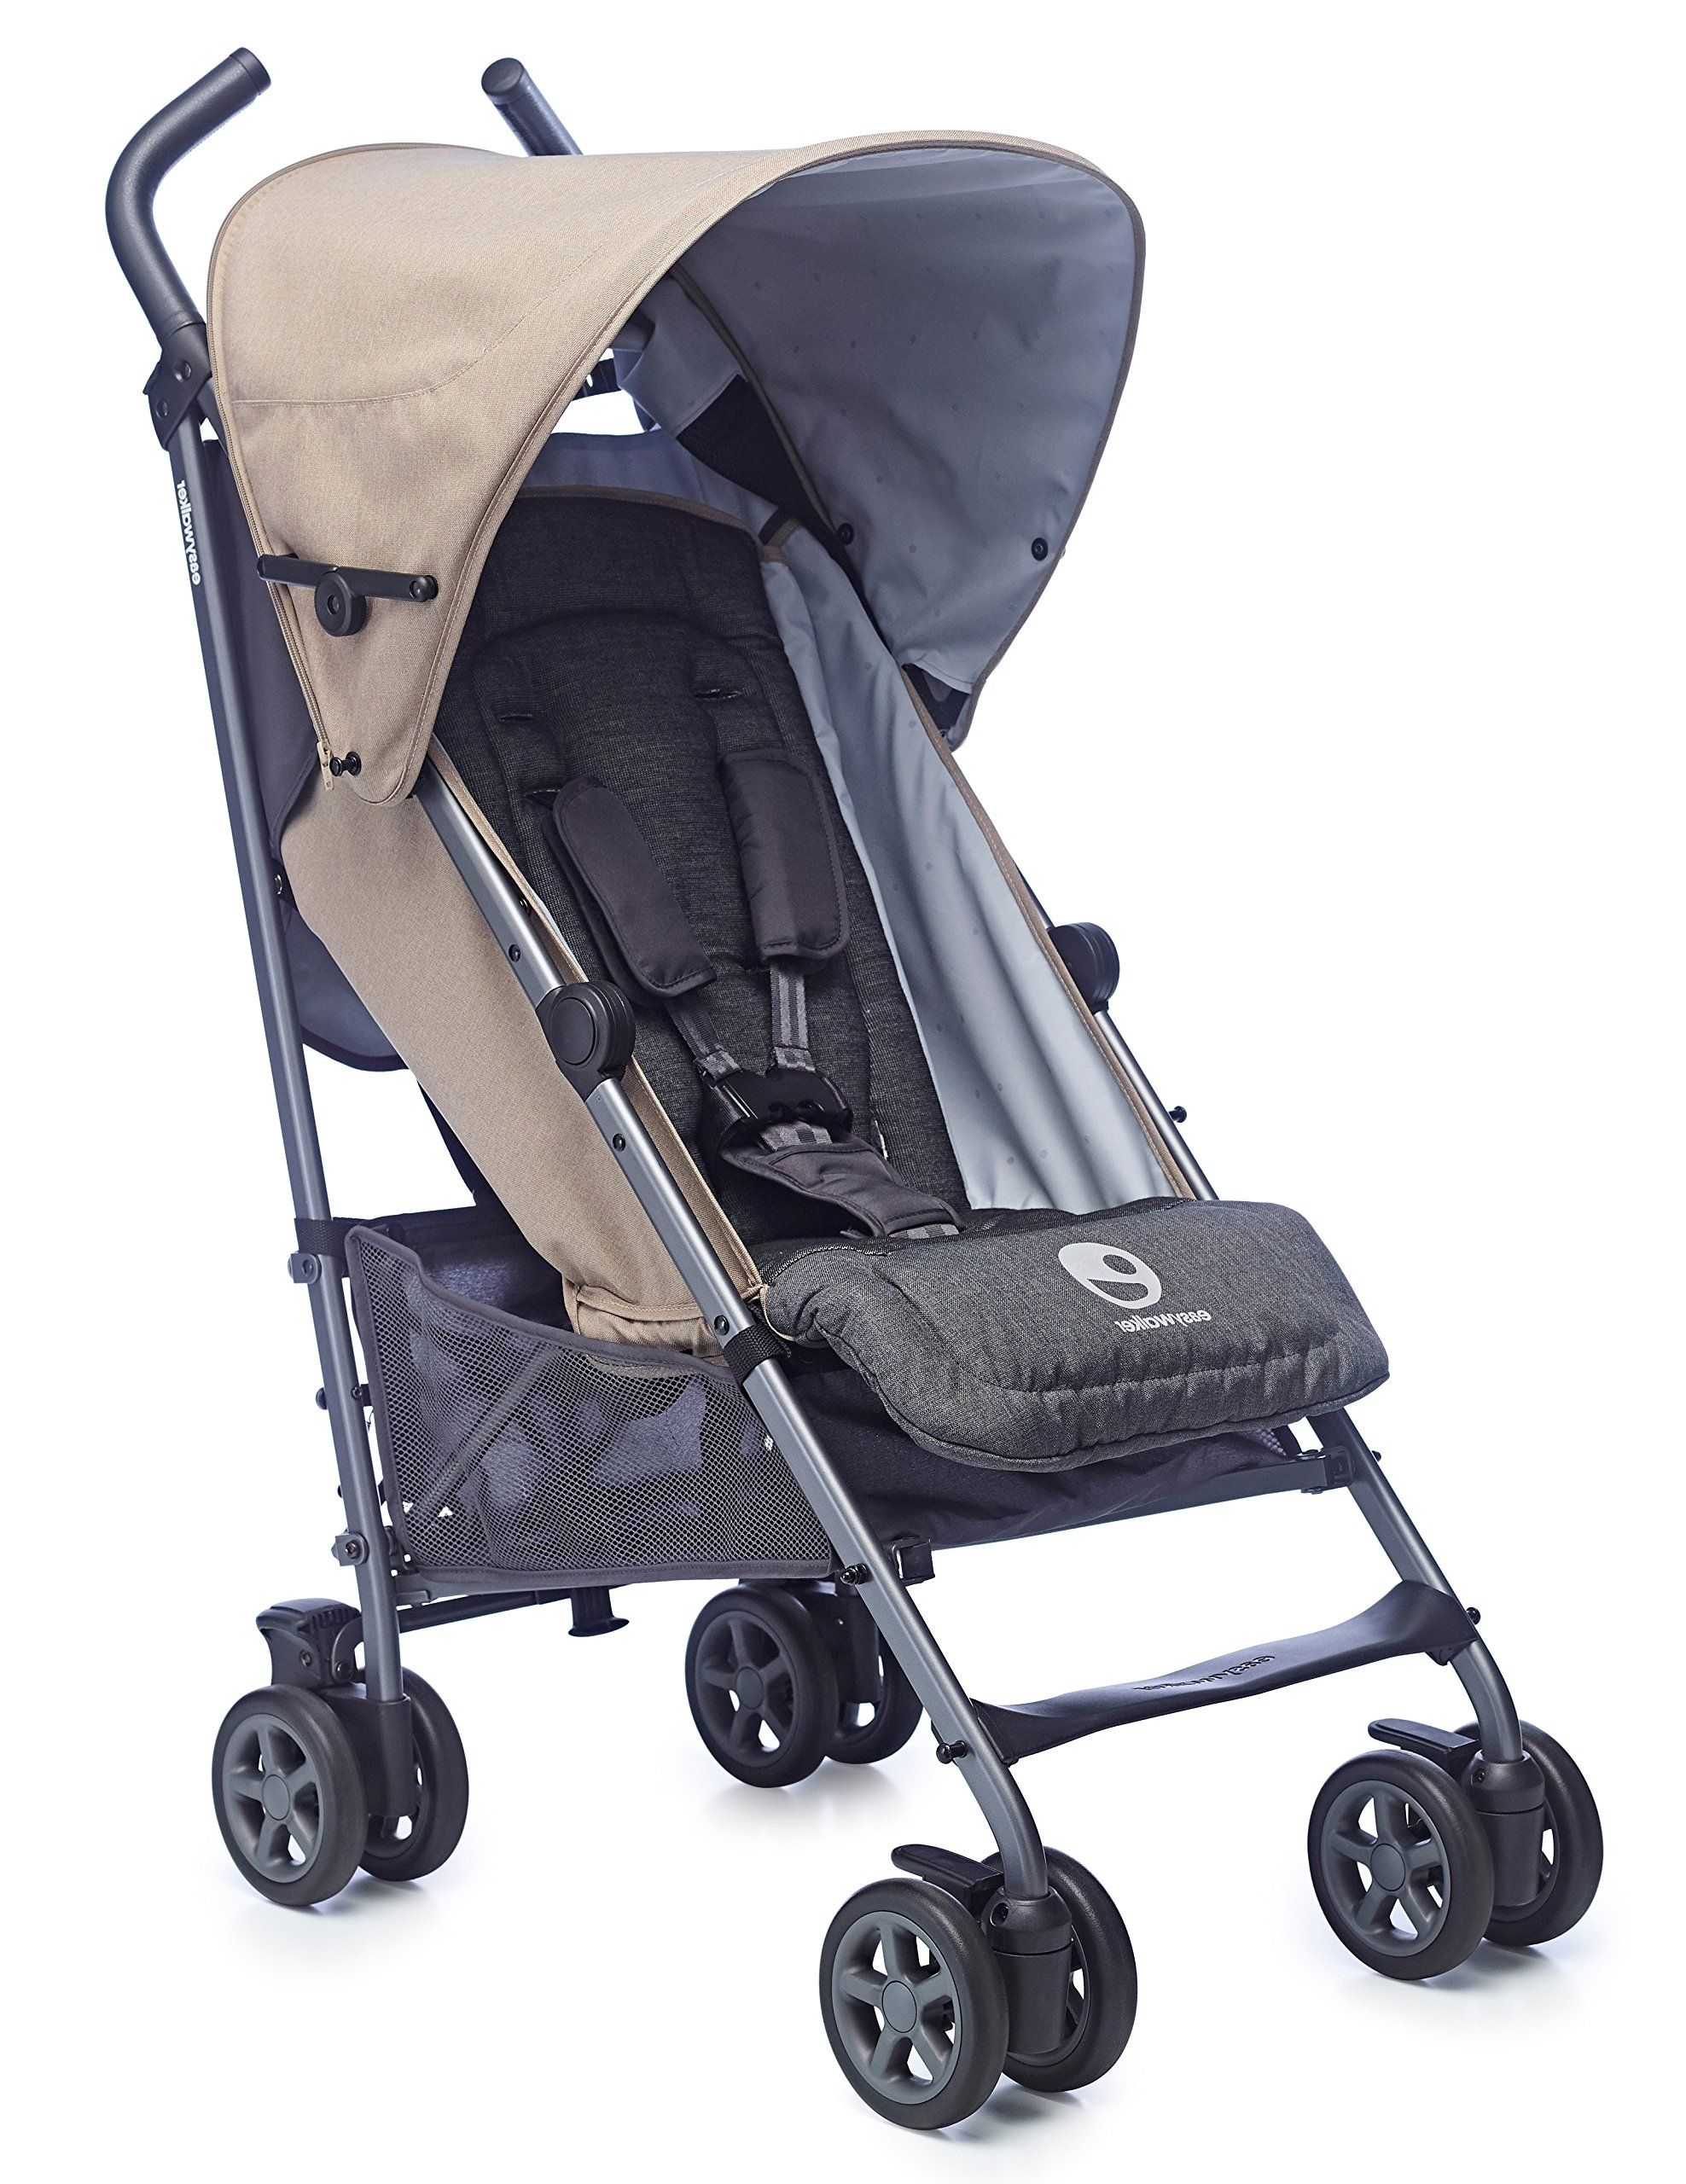 Kinderwagen Easywalker Duo Easywalker Buggy Ibiza Brunch Suitable From Birth 5 Point 3